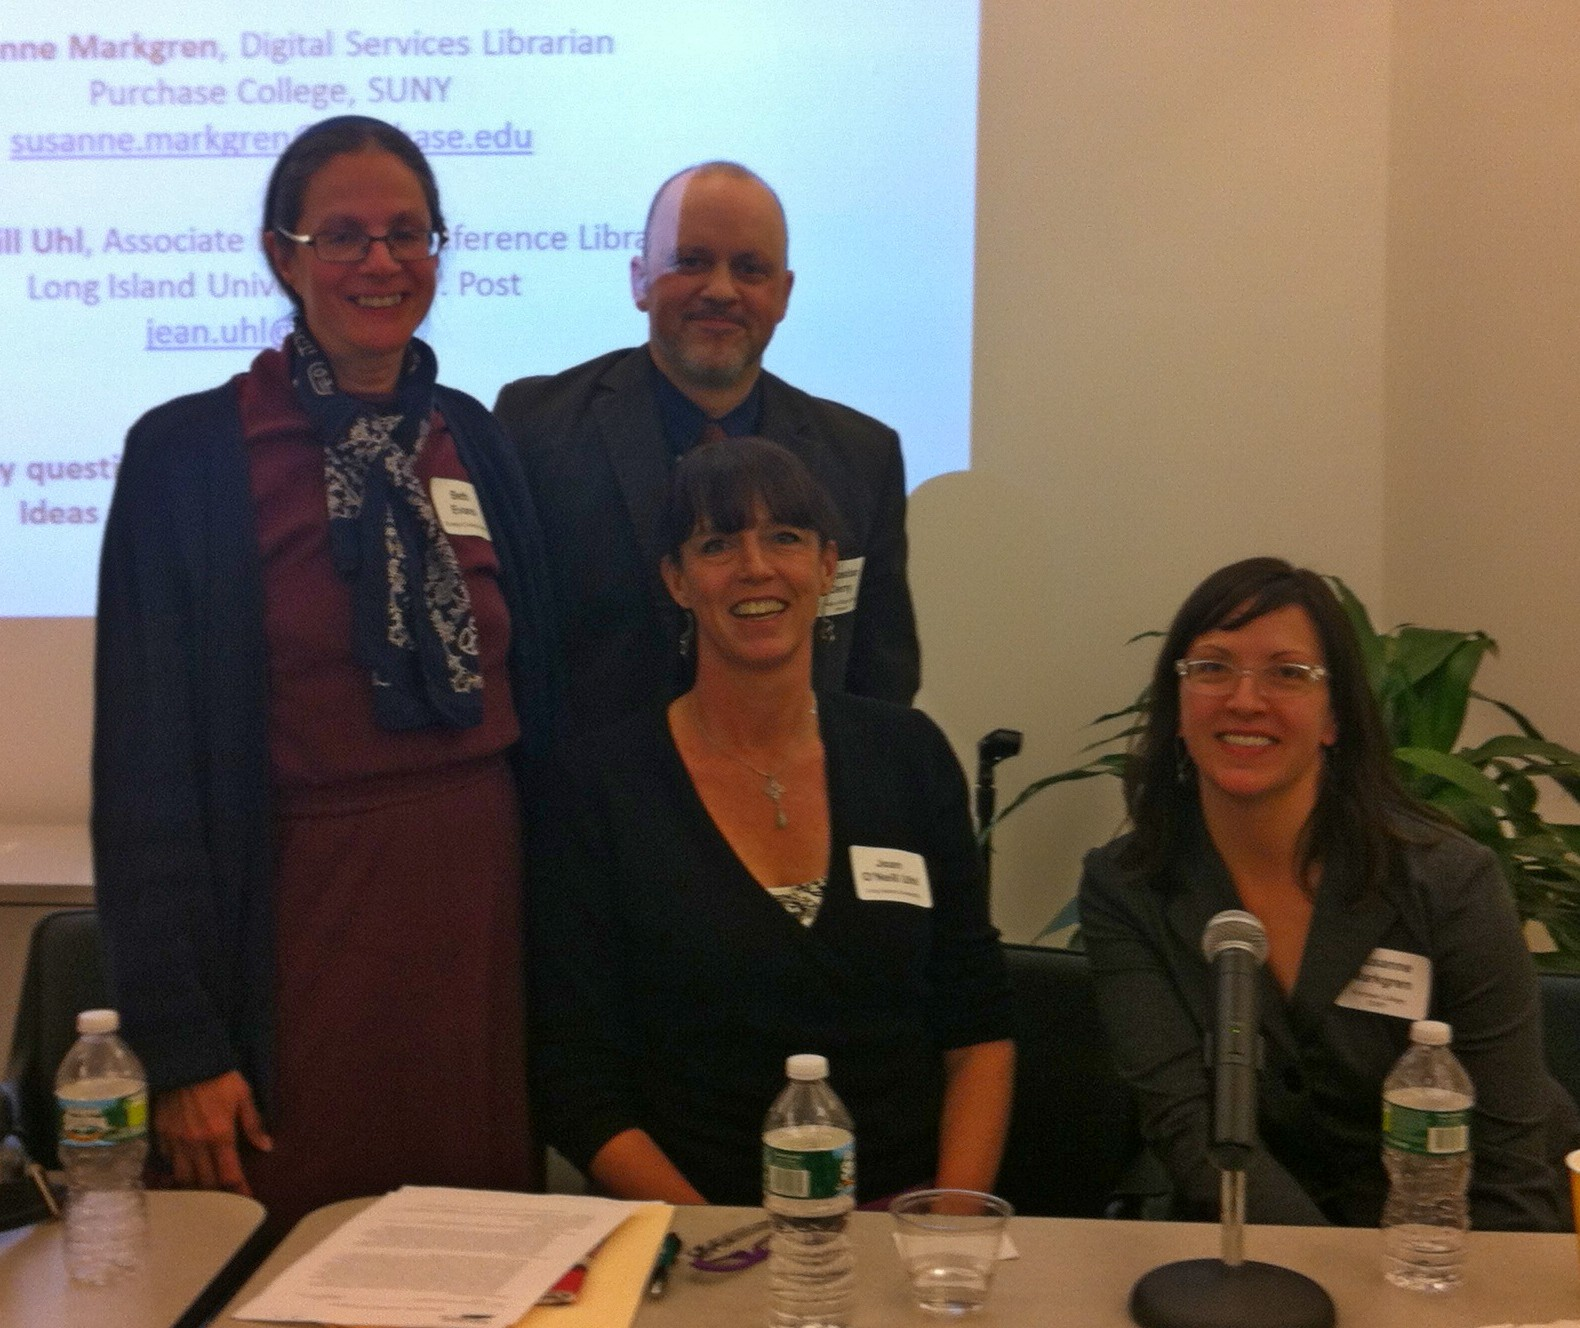 Protected: ACRL/NY Presents Demystifying the Hiring Process, April 24, 2014